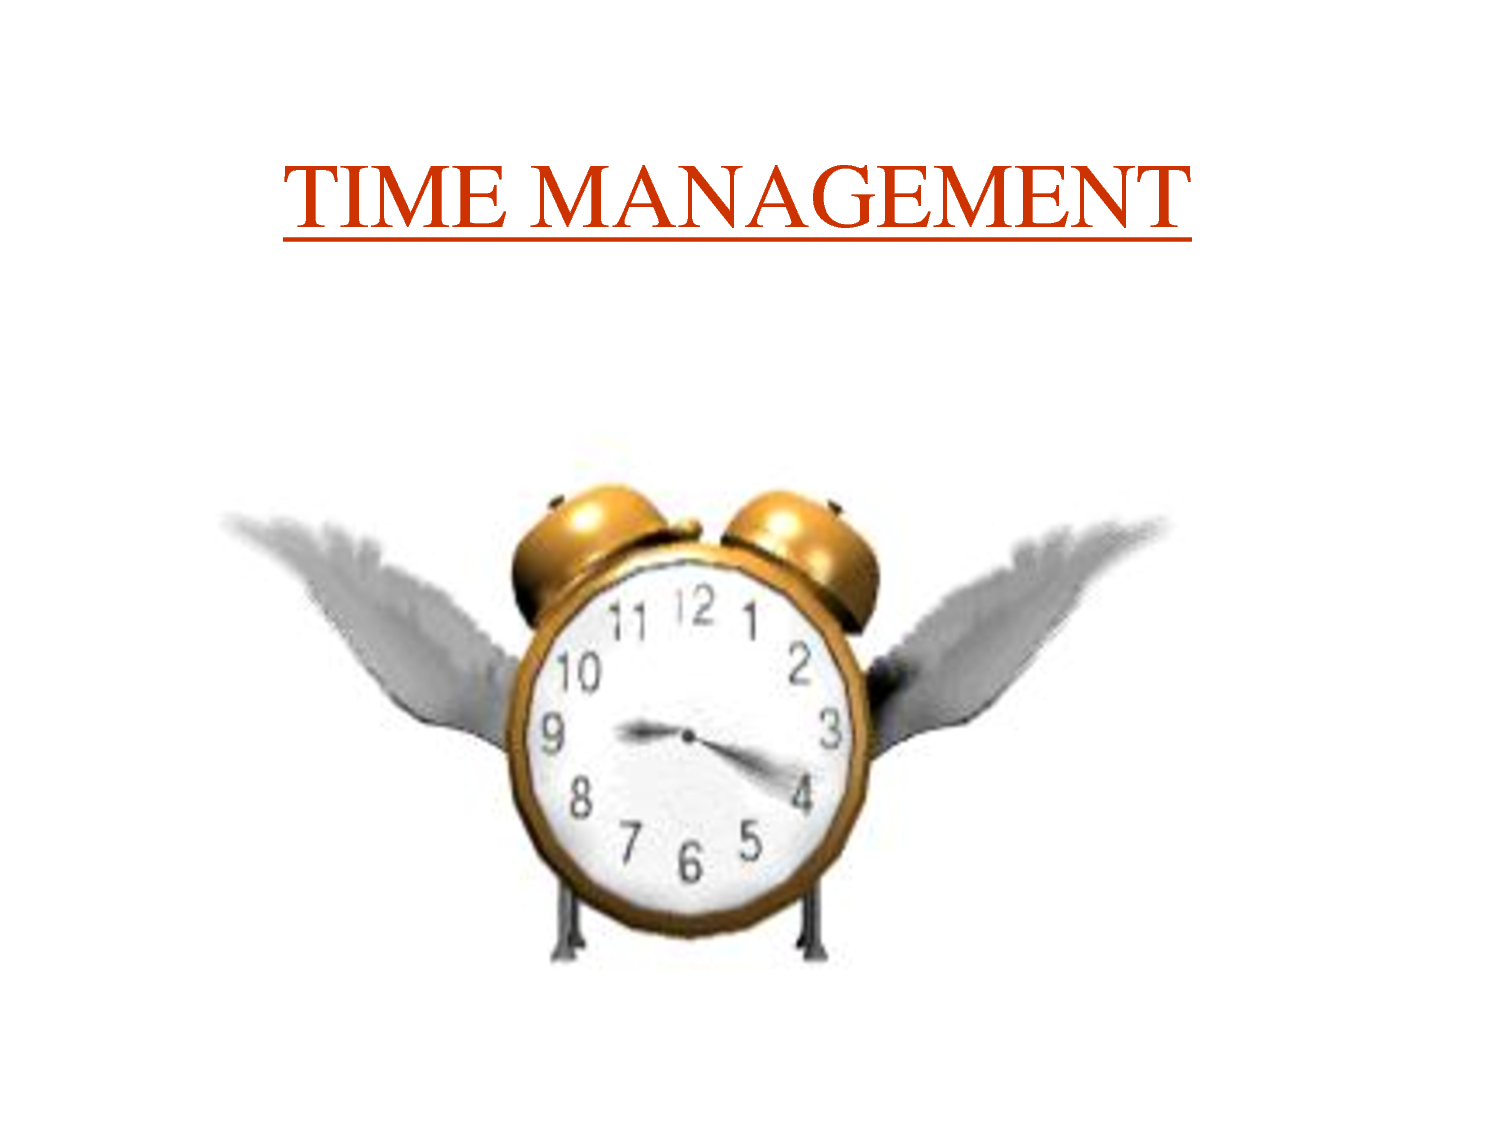 tima management Time is precious, particularly when it comes to running a small business yet there are never more than 24 hours in a day some entrepreneurs respond to this fact of life with focus and.